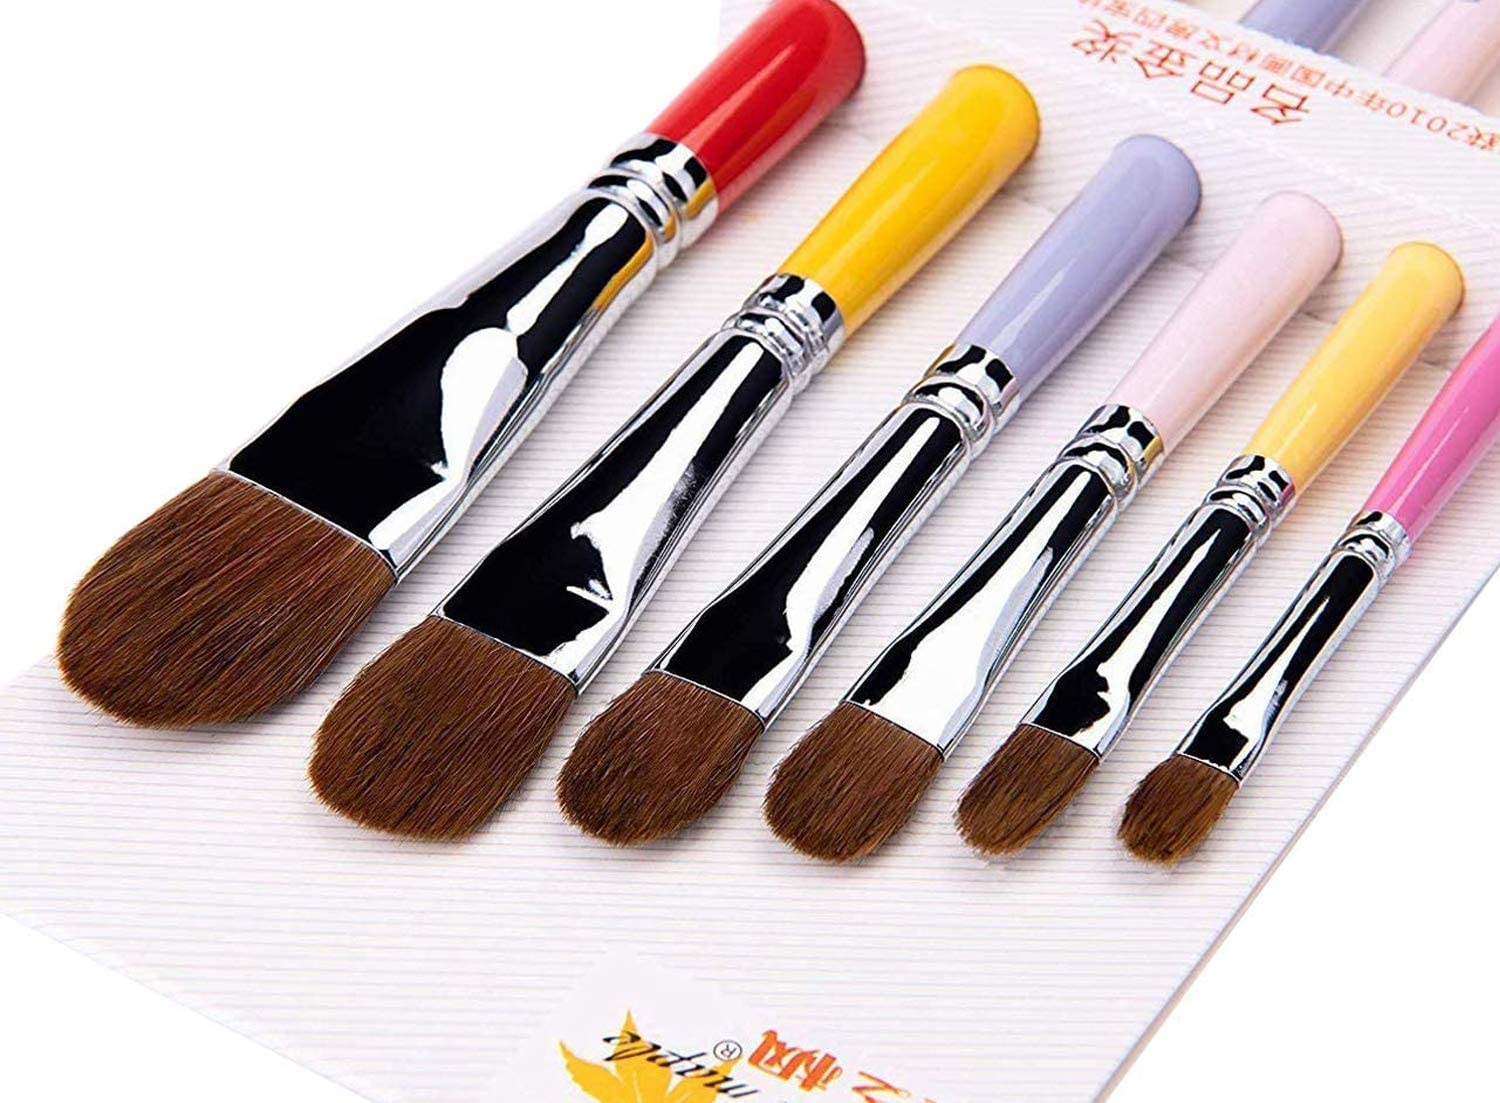 Acrylic /& Oil Painting Paint by Numbers Suitable for Beginner Professional Artist Filbert Paint Brush Sable Hair Cats Tongue Shape Set of 6pcs for Watercolor Students